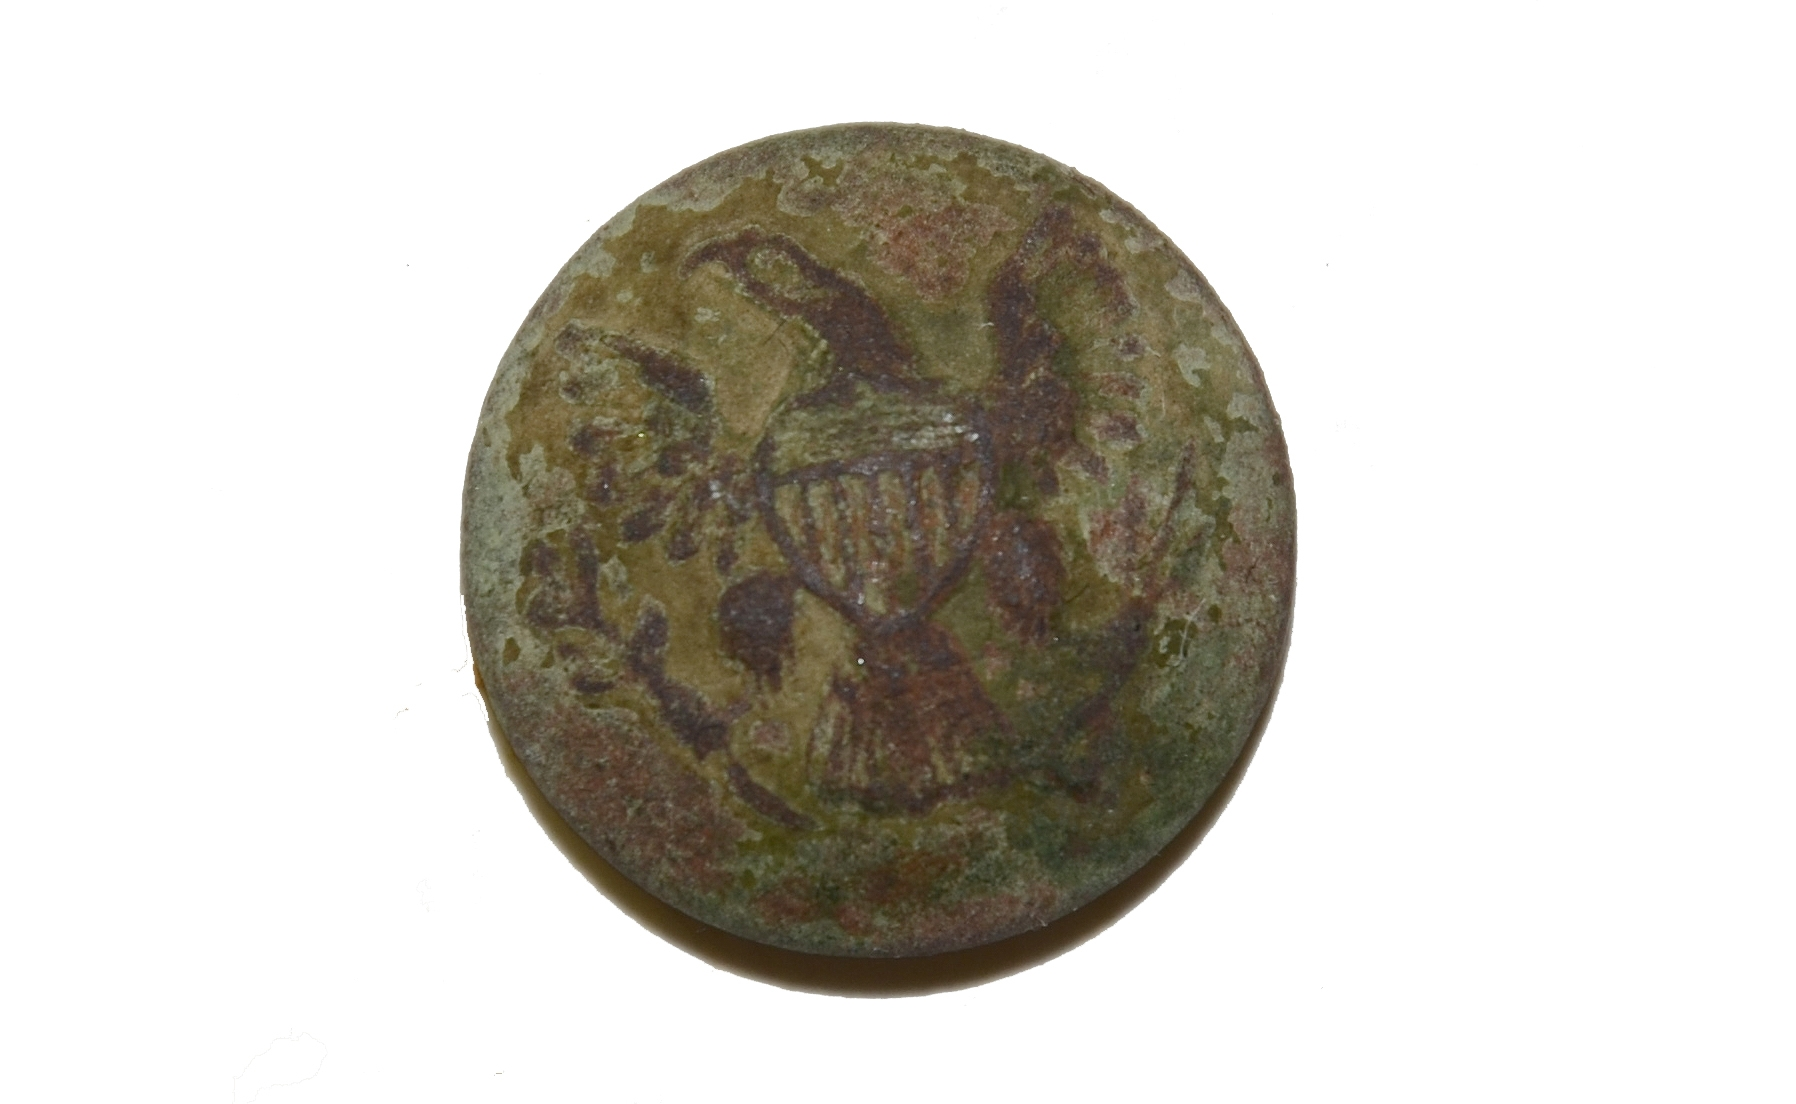 US GENERAL SERVICE EAGLE COAT BUTTON - GETTYSBURG